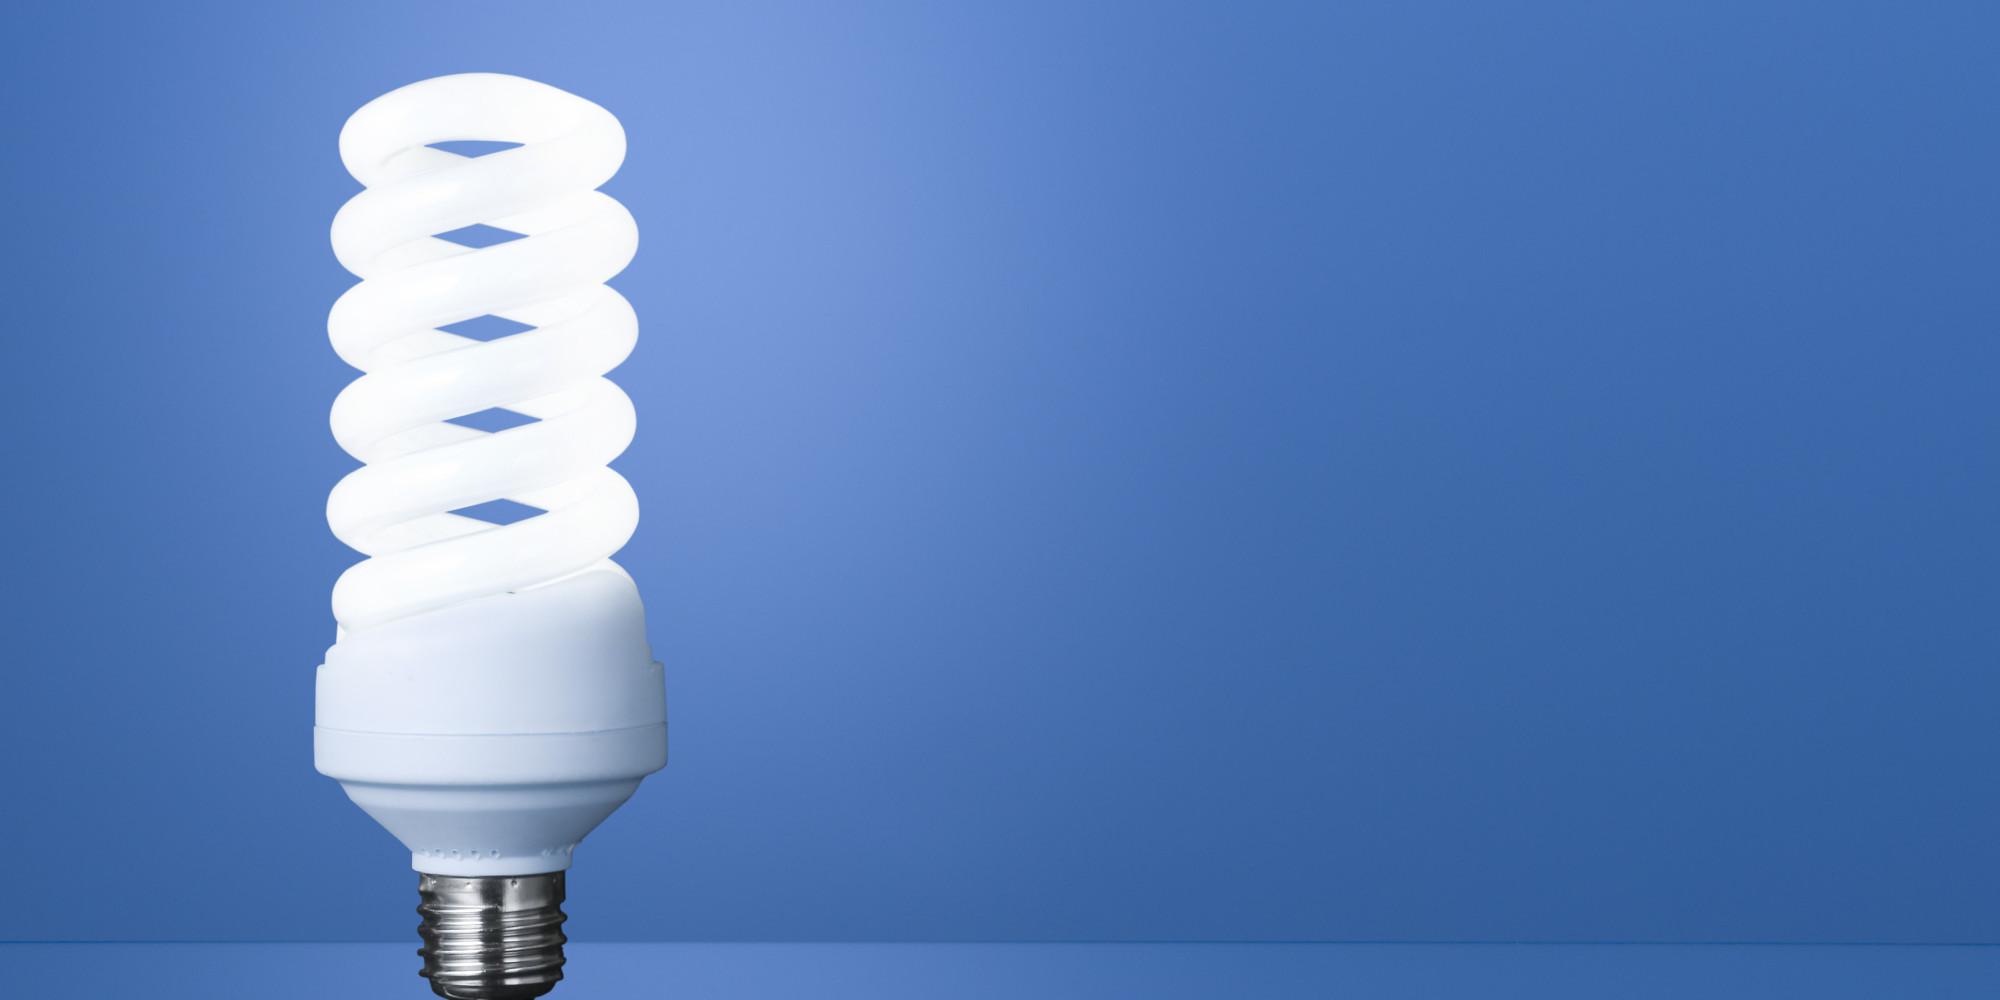 Fall Back  Into Energy Saving Light Bulbs   HuffPost. Fall Back  Into Energy Saving Light Bulbs   HuffPost